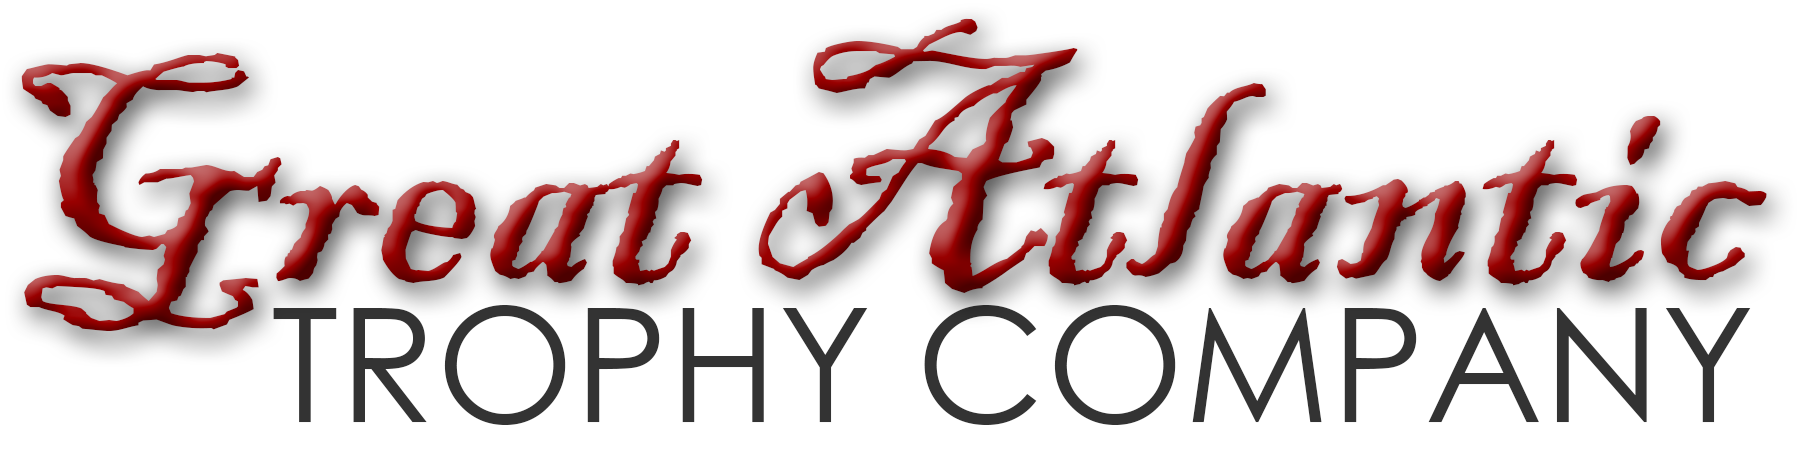 Great Atlantic Trophy Company LLC